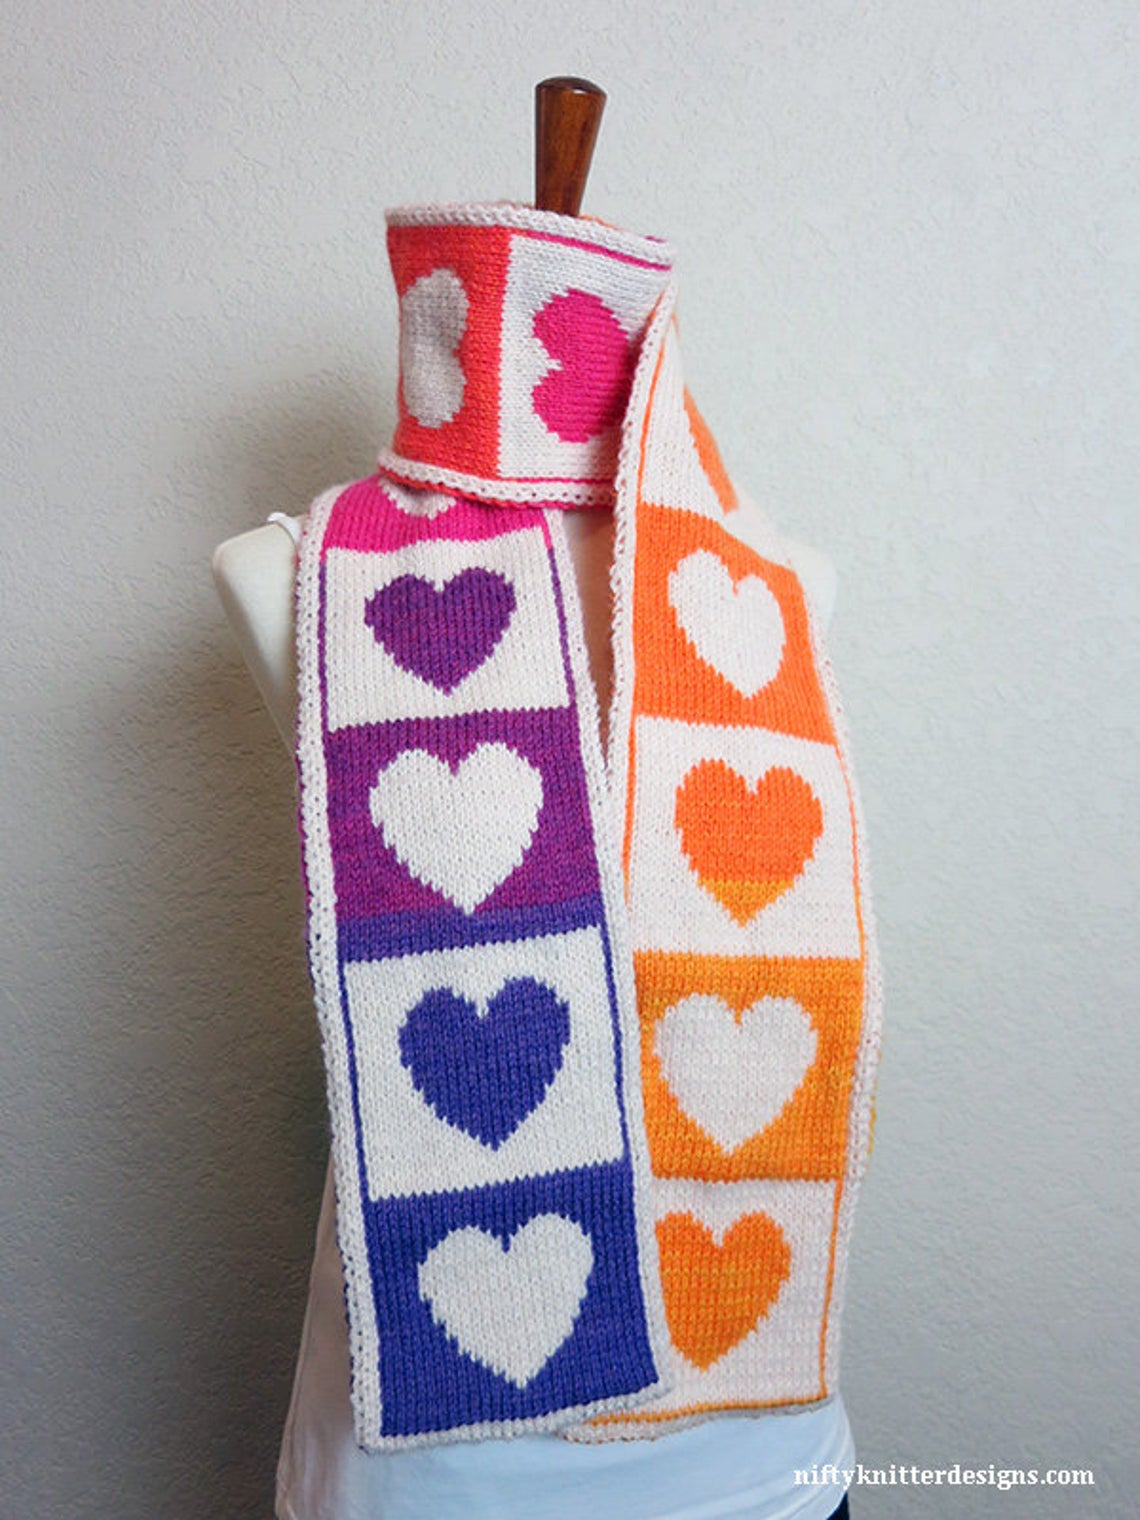 There's Never Been a Better Time To Knit a Colorful Hearts Scarf ... Stitch It With Love